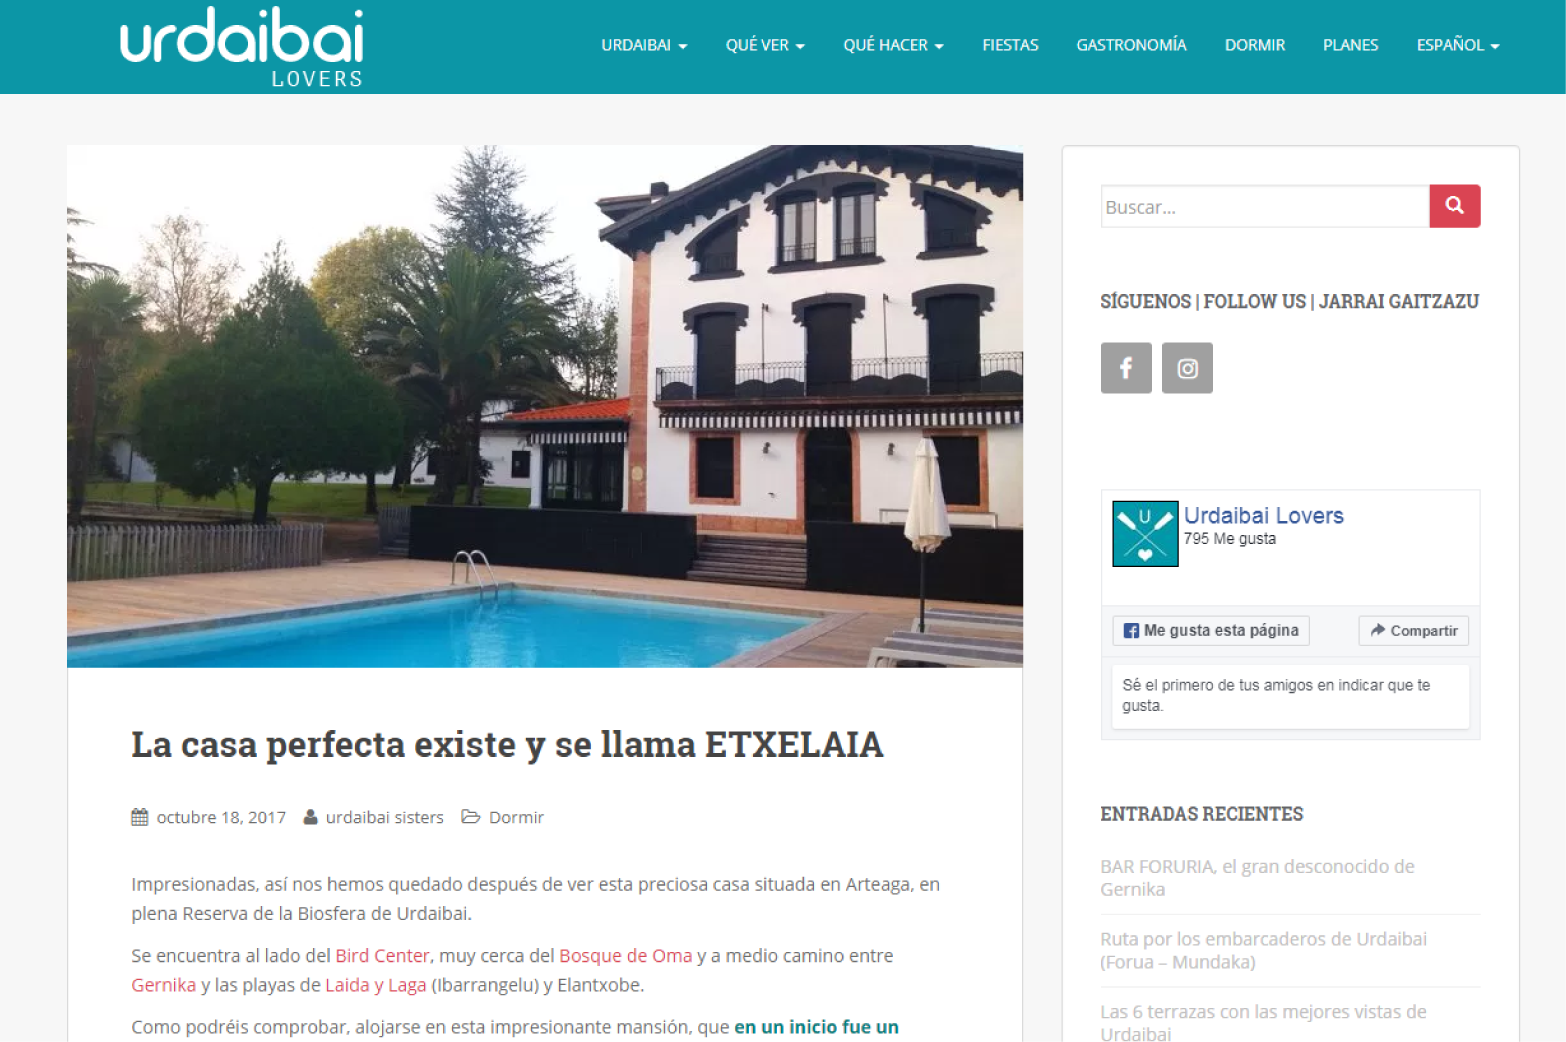 Etxelaia - One of the best accommodations in the Urdaibai Reserve